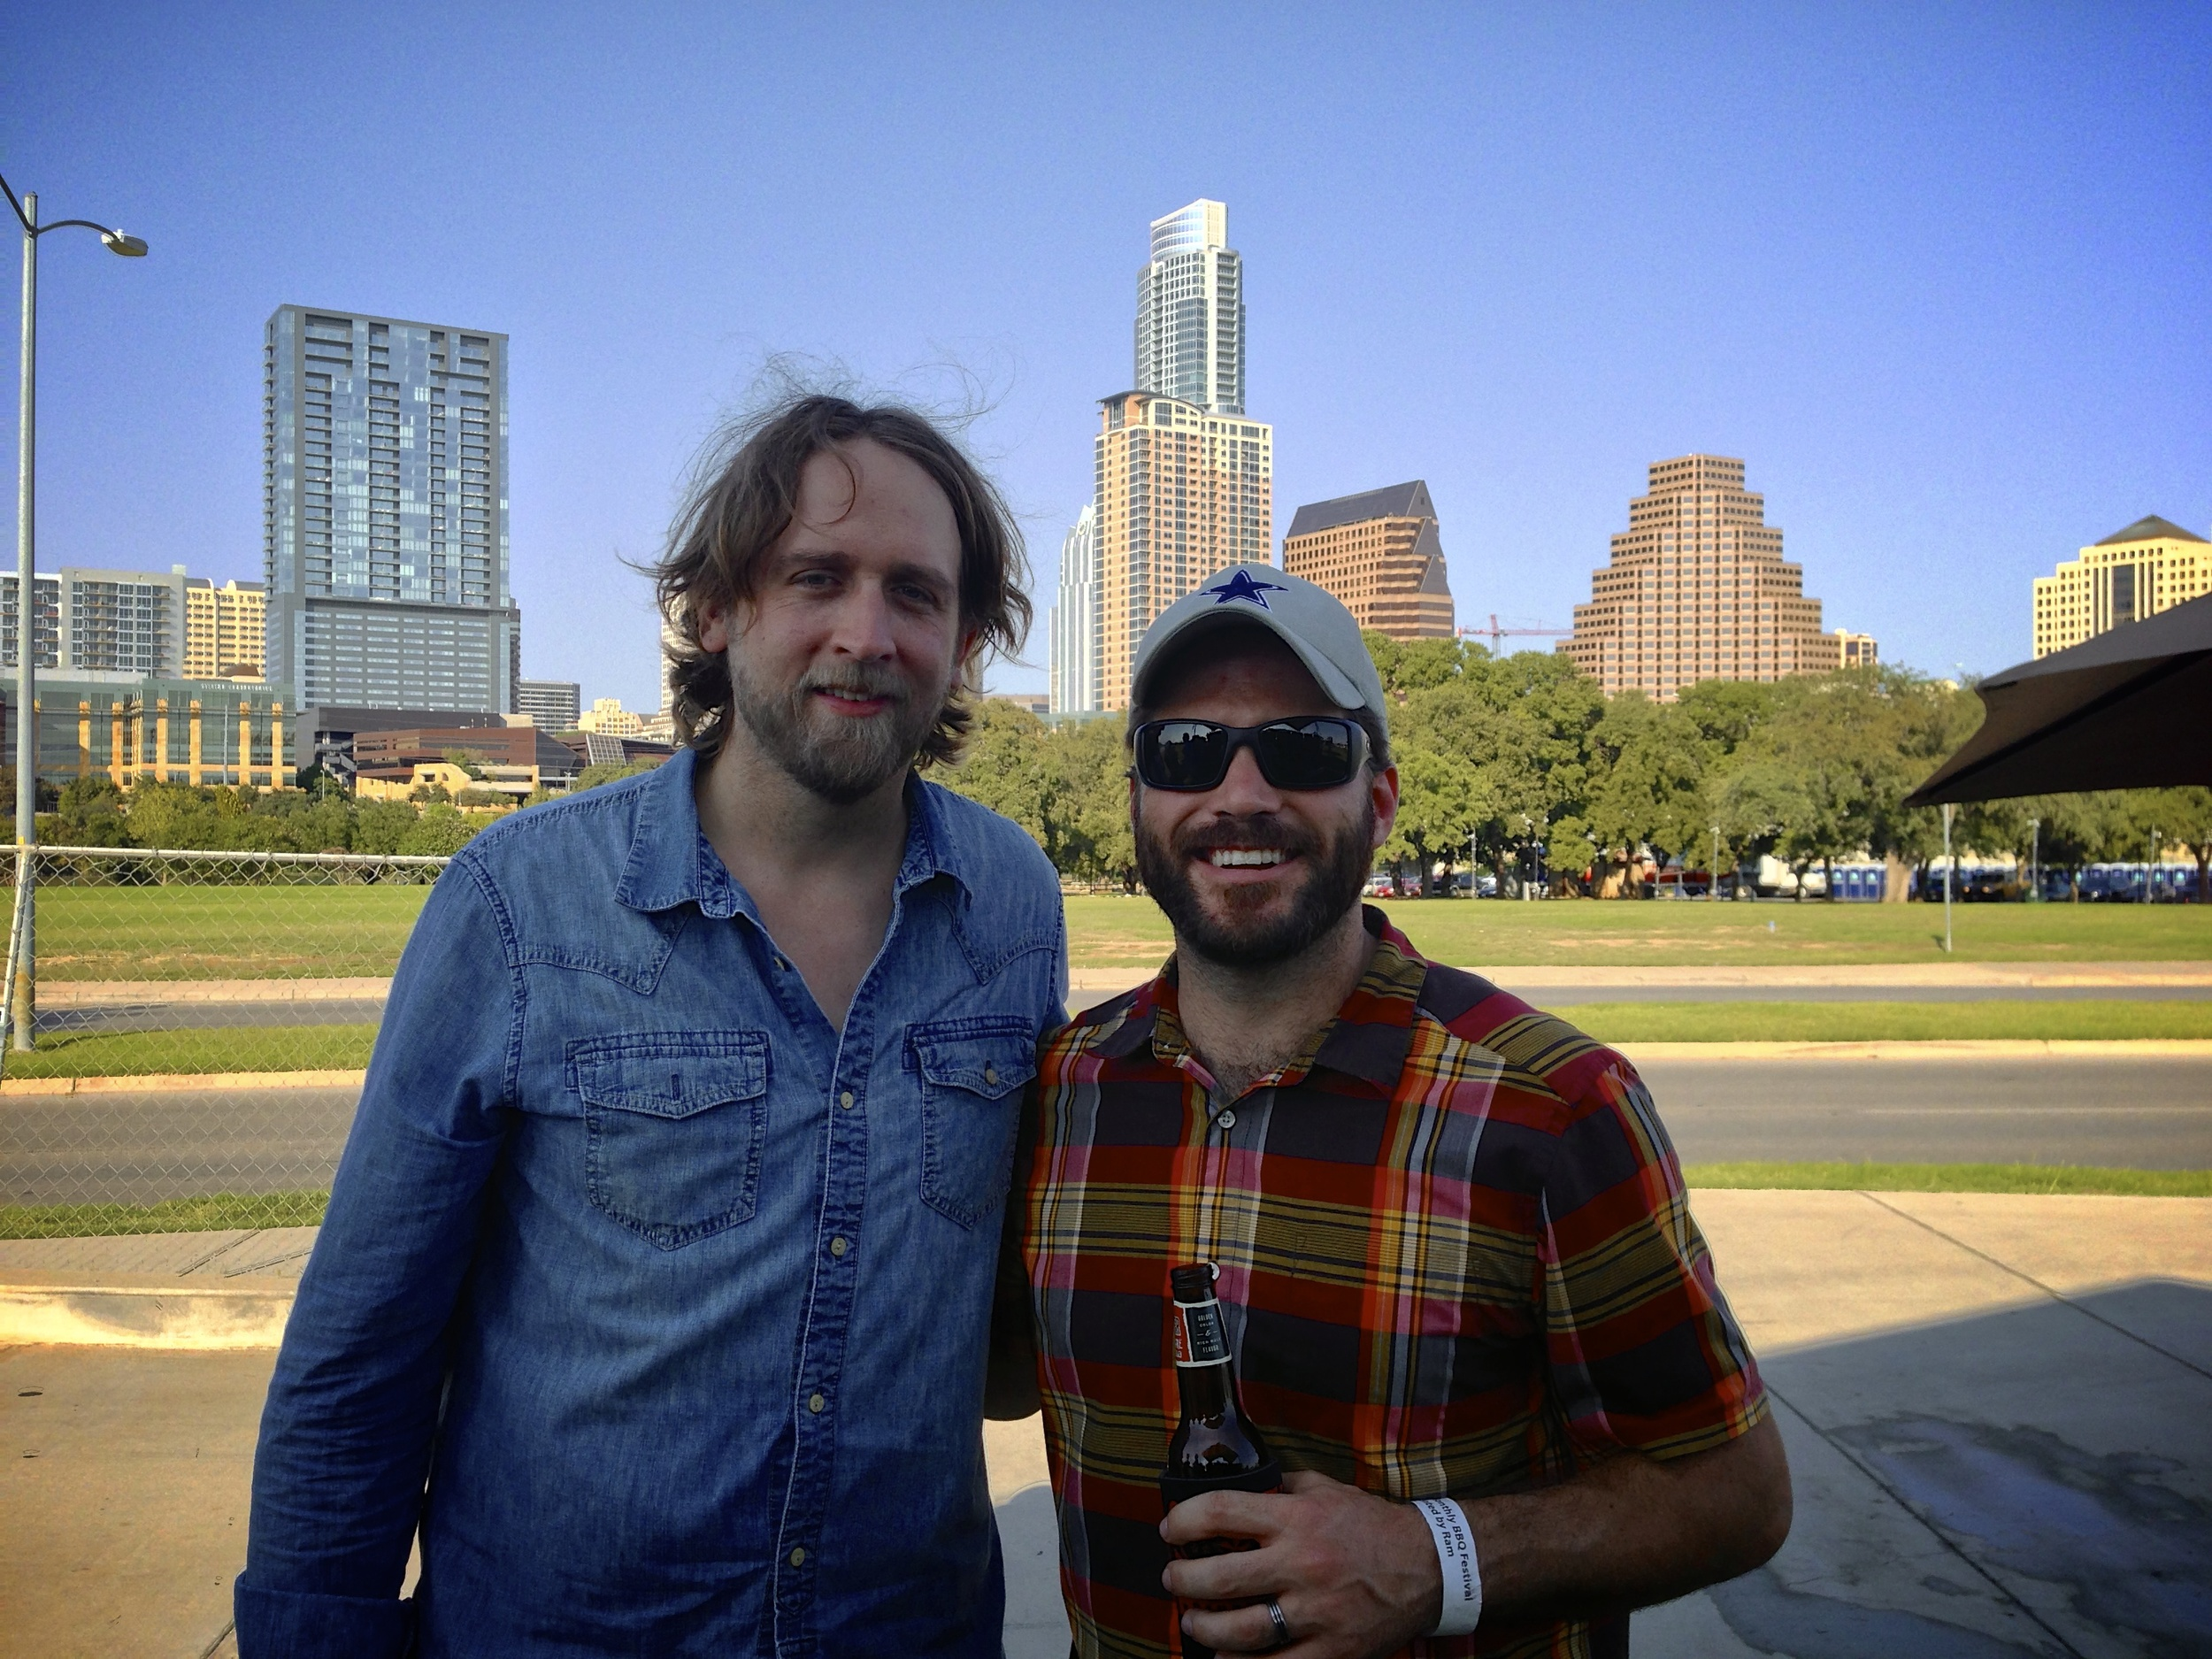 Hayes Carll and me after the show.